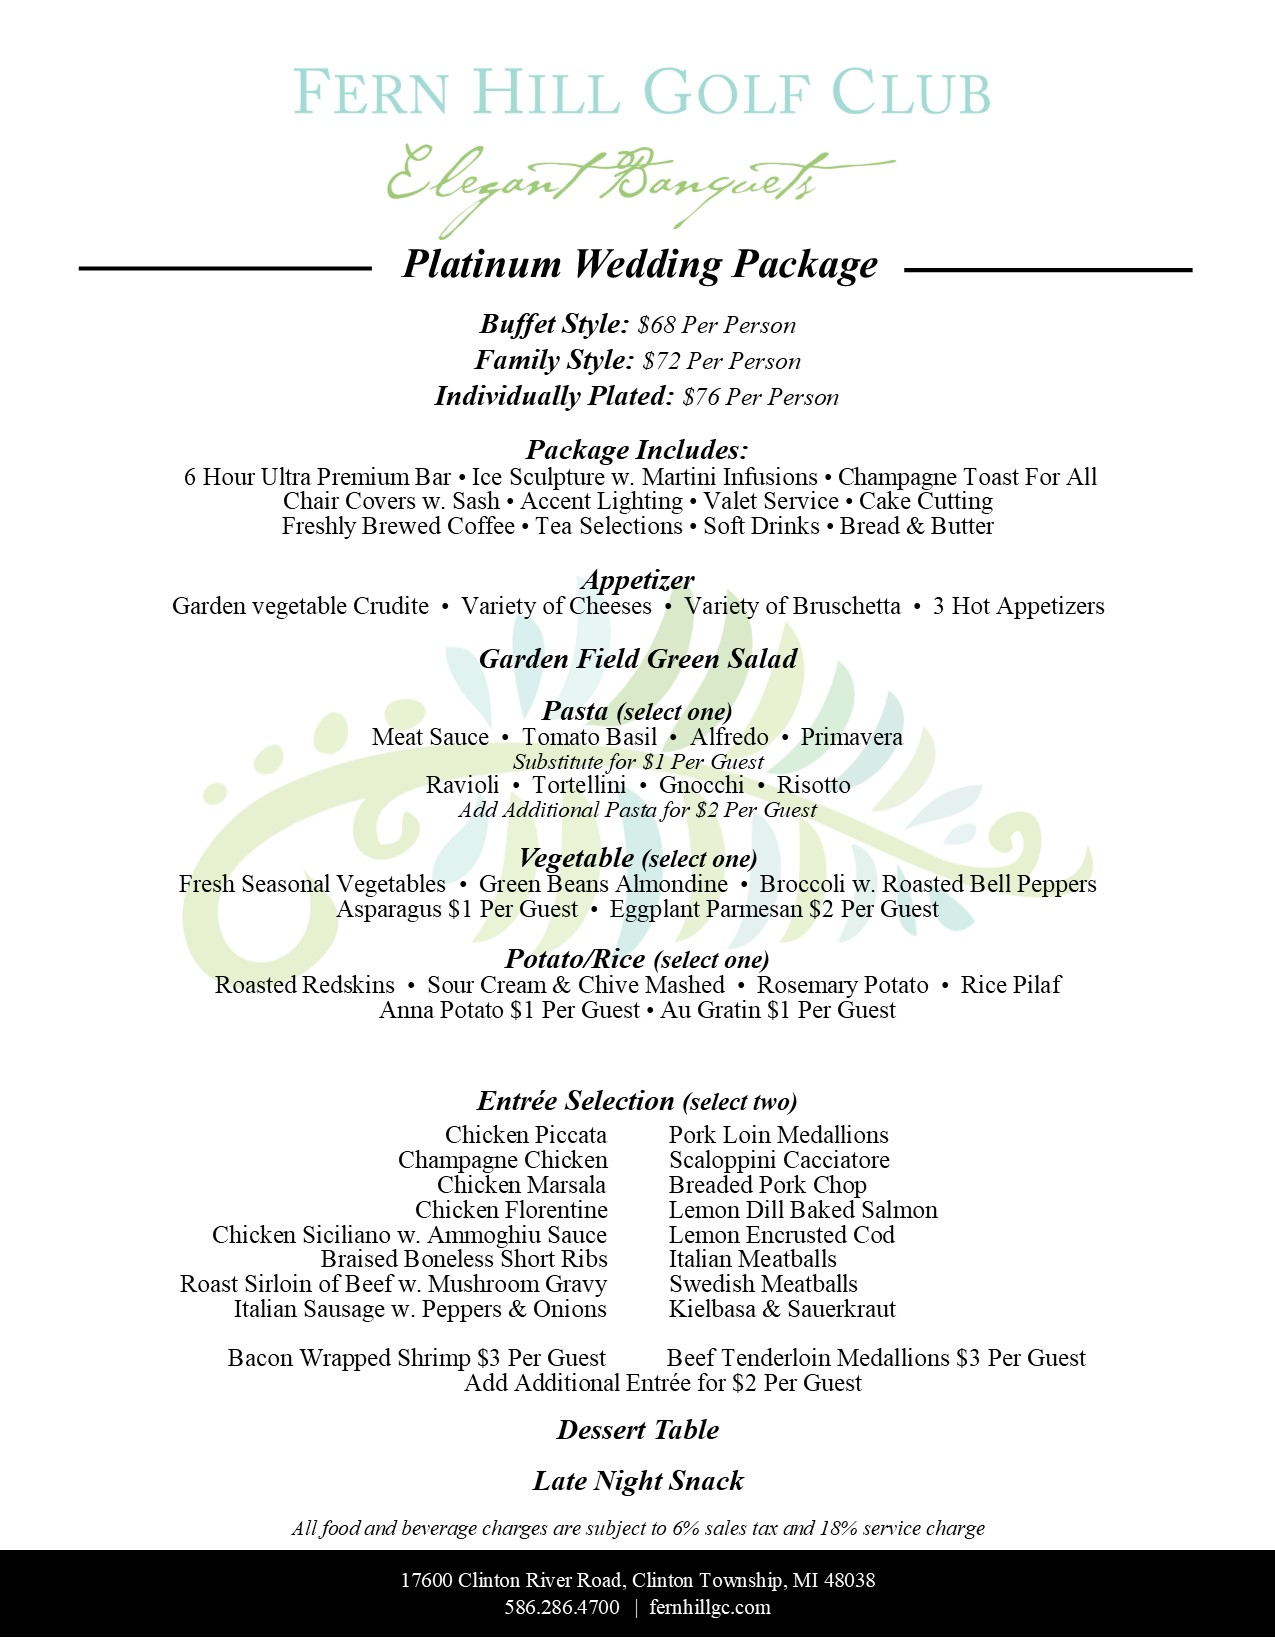 Platinum Wedding Package Our Largest Variety Of Choices For Entrees And Serving Options Along With 6 Hour Ultra Premium Bar Service